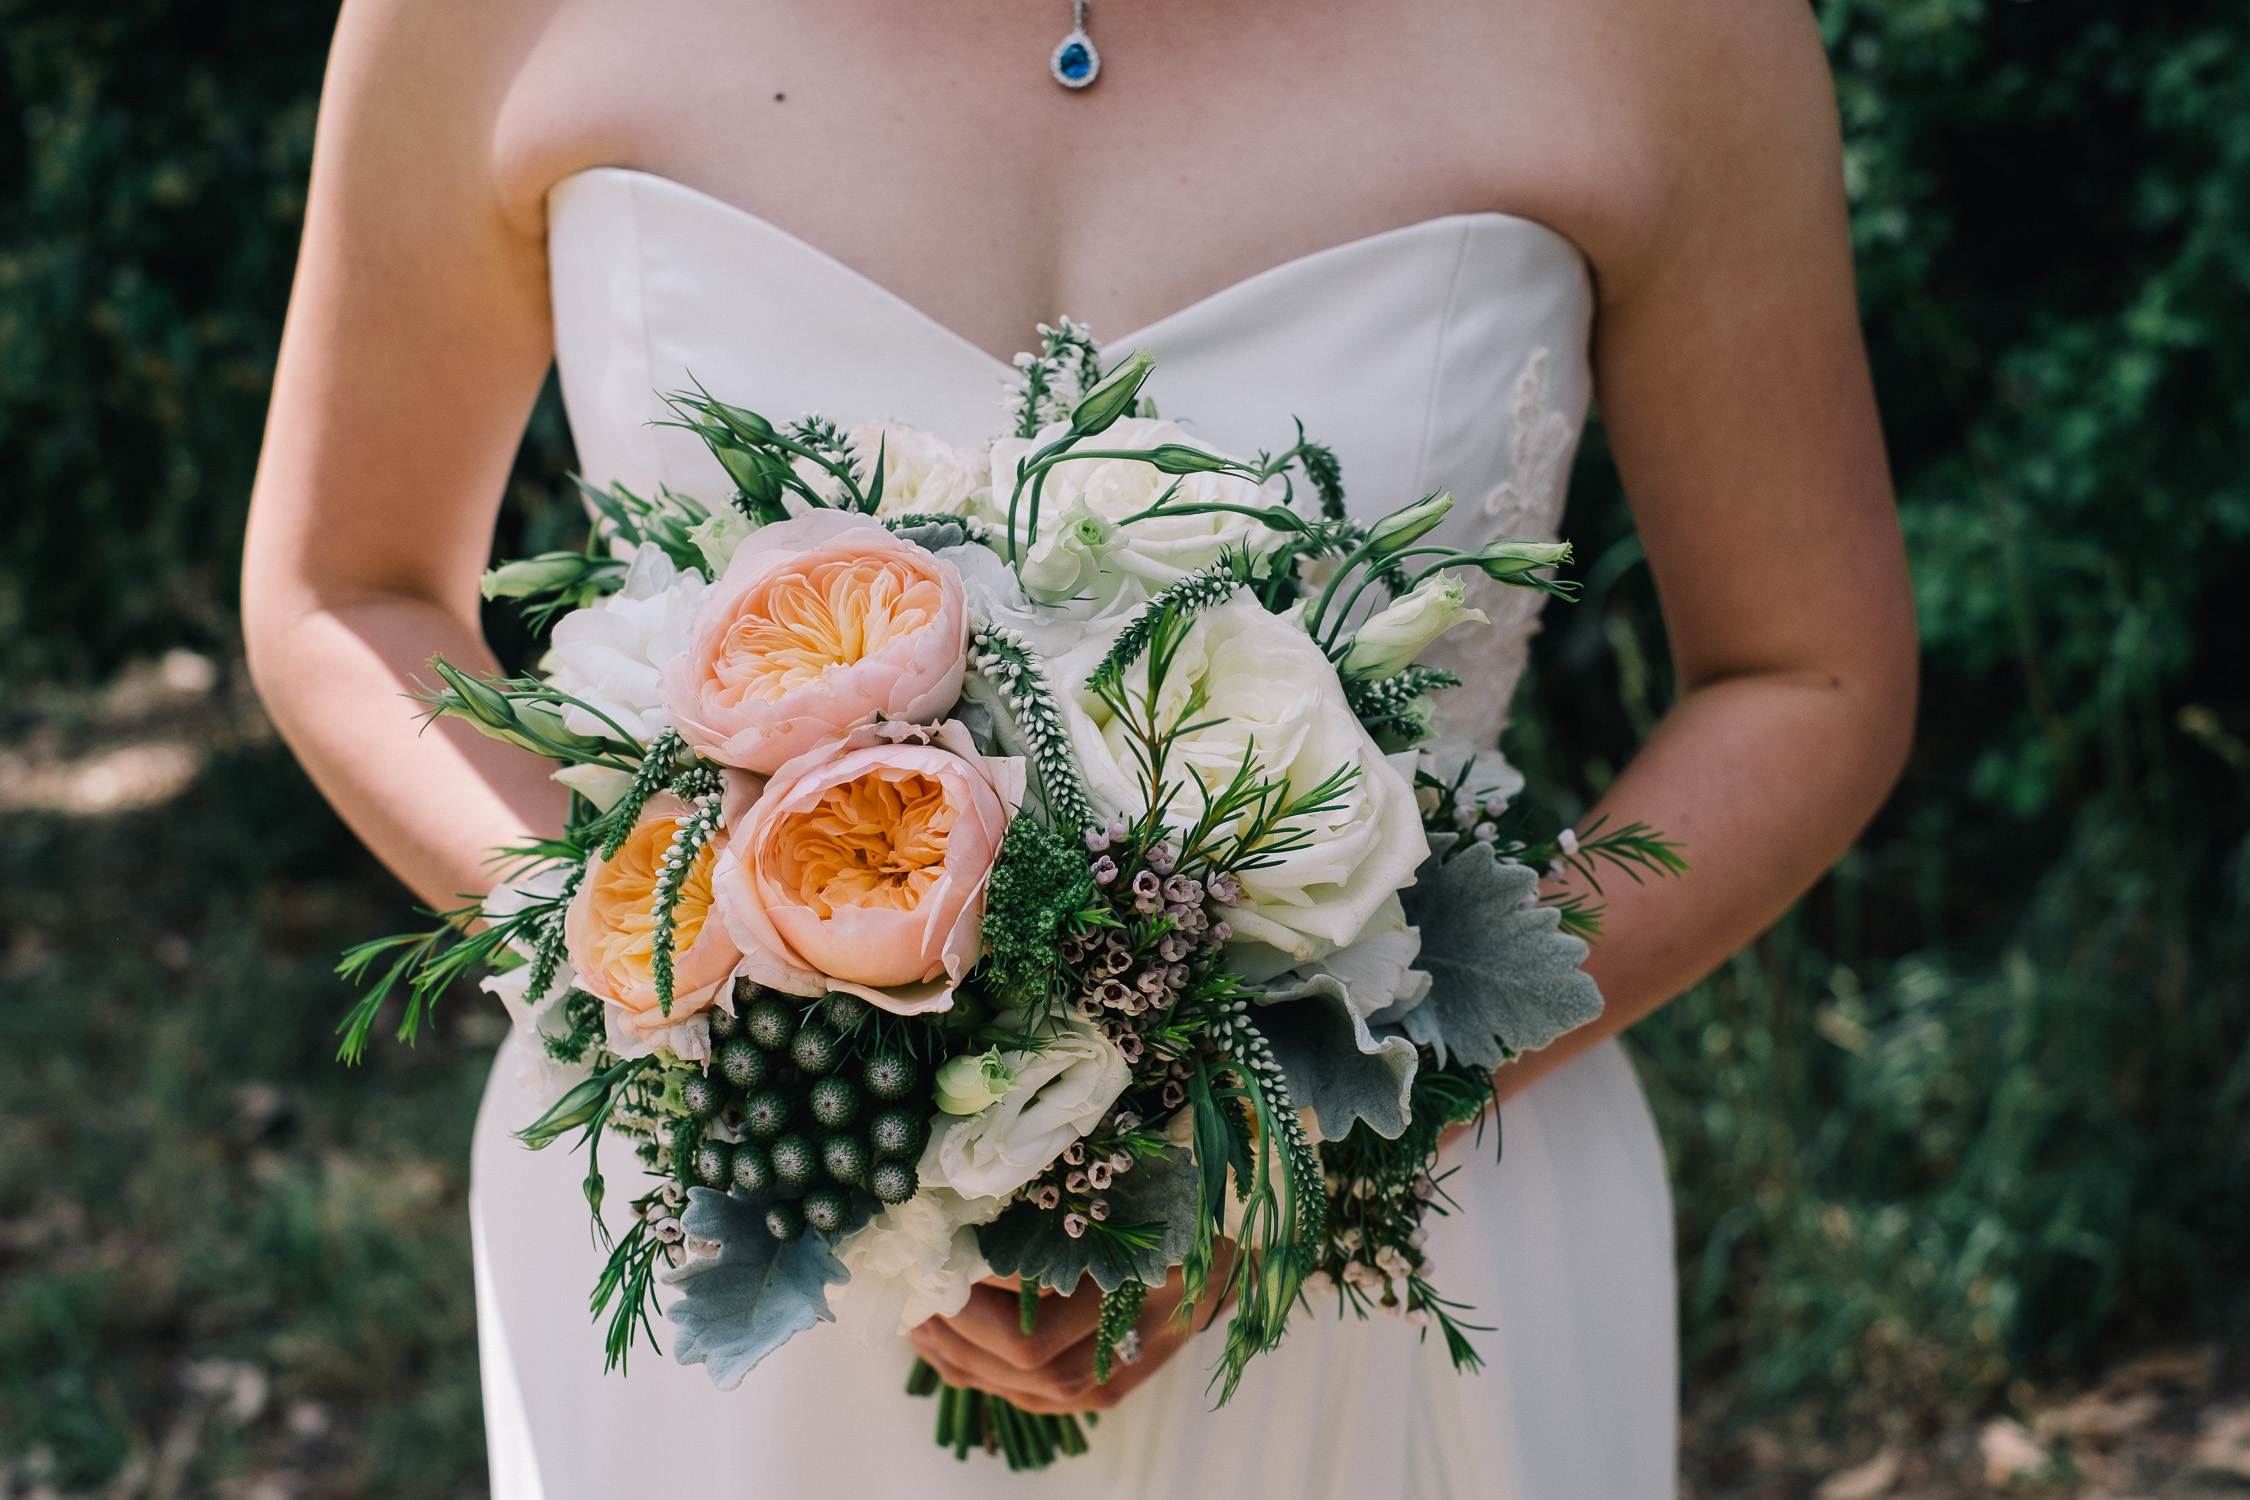 Lynsey and Kai's Melbourne wedding - bridal bouquet with peonies